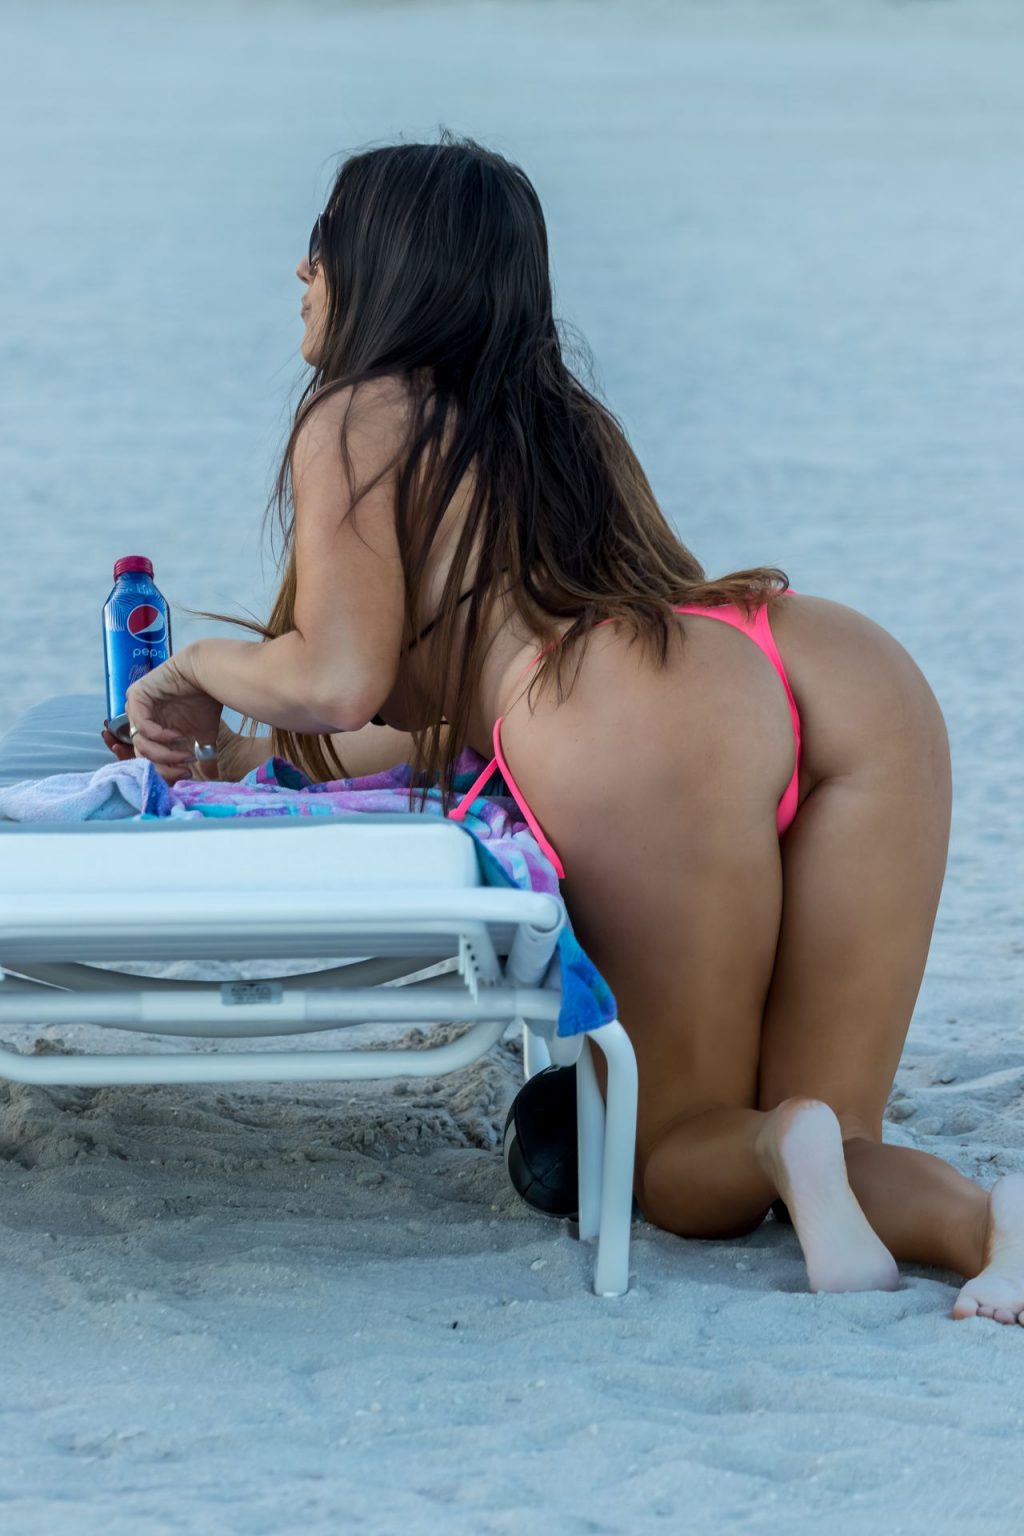 Claudia Romani Shows Off Her Butt for the Super Bowl (25 Photos)